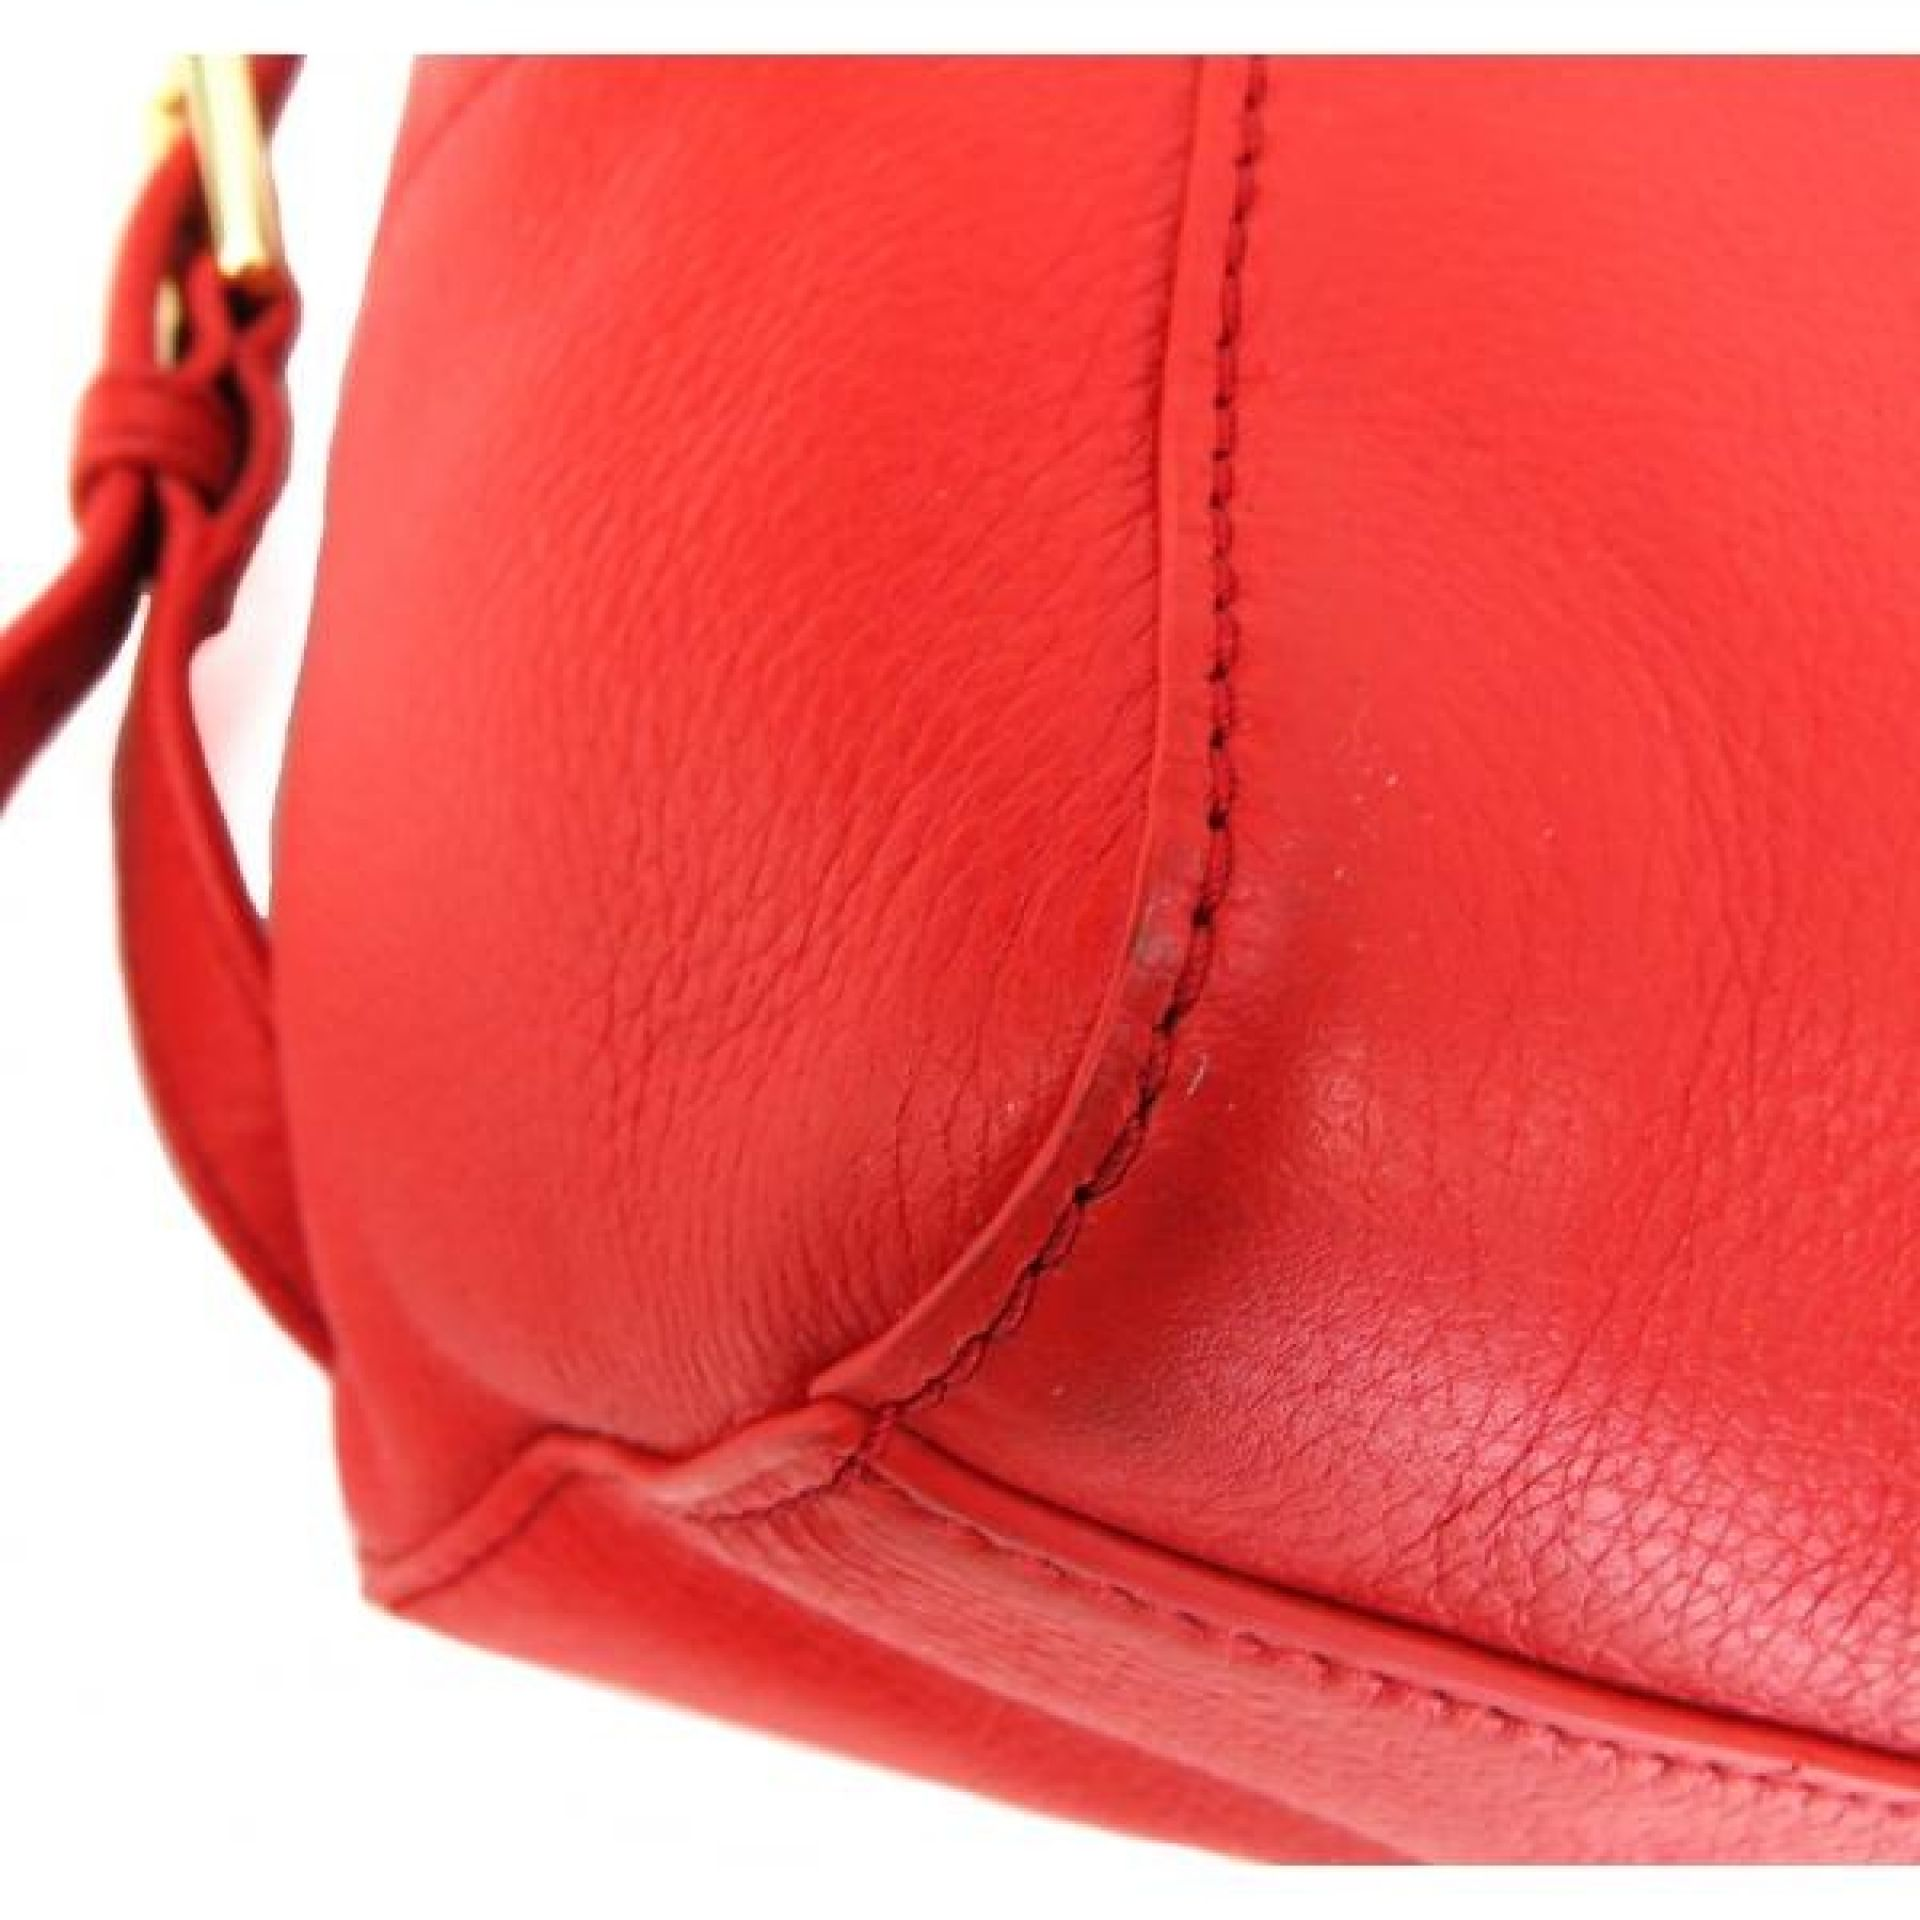 Tory Burch Red Leather Mini Thea Backpack Bag